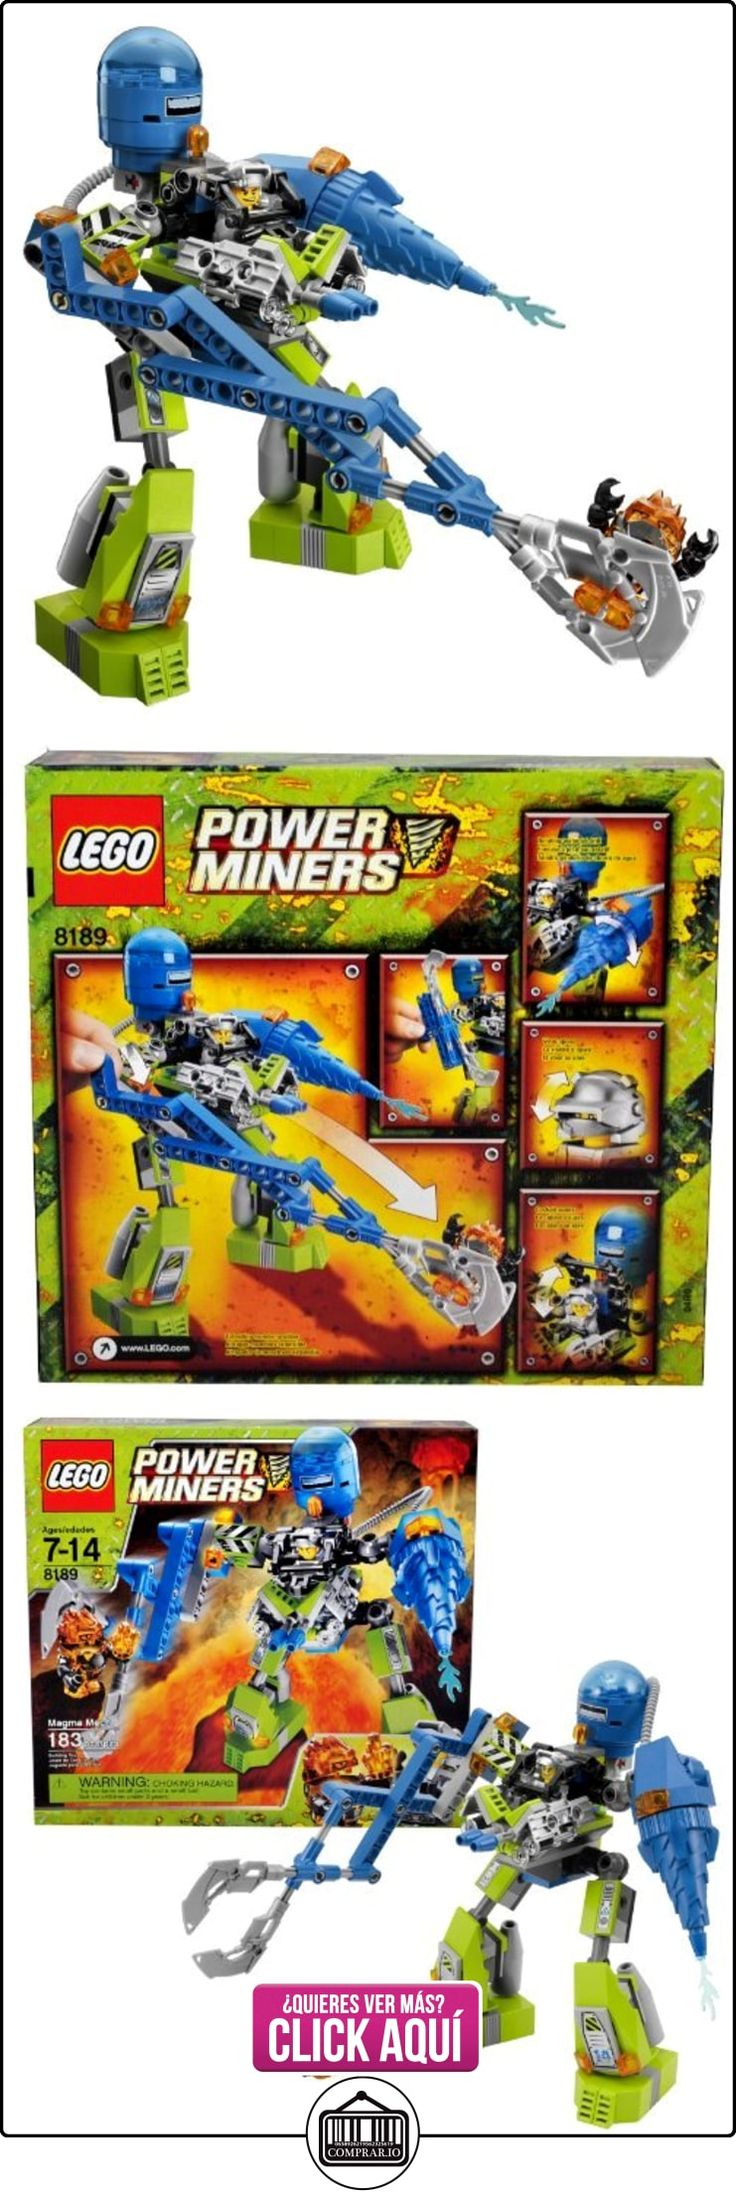 Lego Year 2010 Power Miners Series Vehicle Set # 8189 - MAGMA MECH with Scissor Claw and Water Jet Plus Firax and Power Miner Engineer Minifigures (Total Pieces: 183) by Power Miners  ✿ Lego - el surtido más amplio ✿ ▬► Ver oferta: https://comprar.io/goto/B005WFZCUG